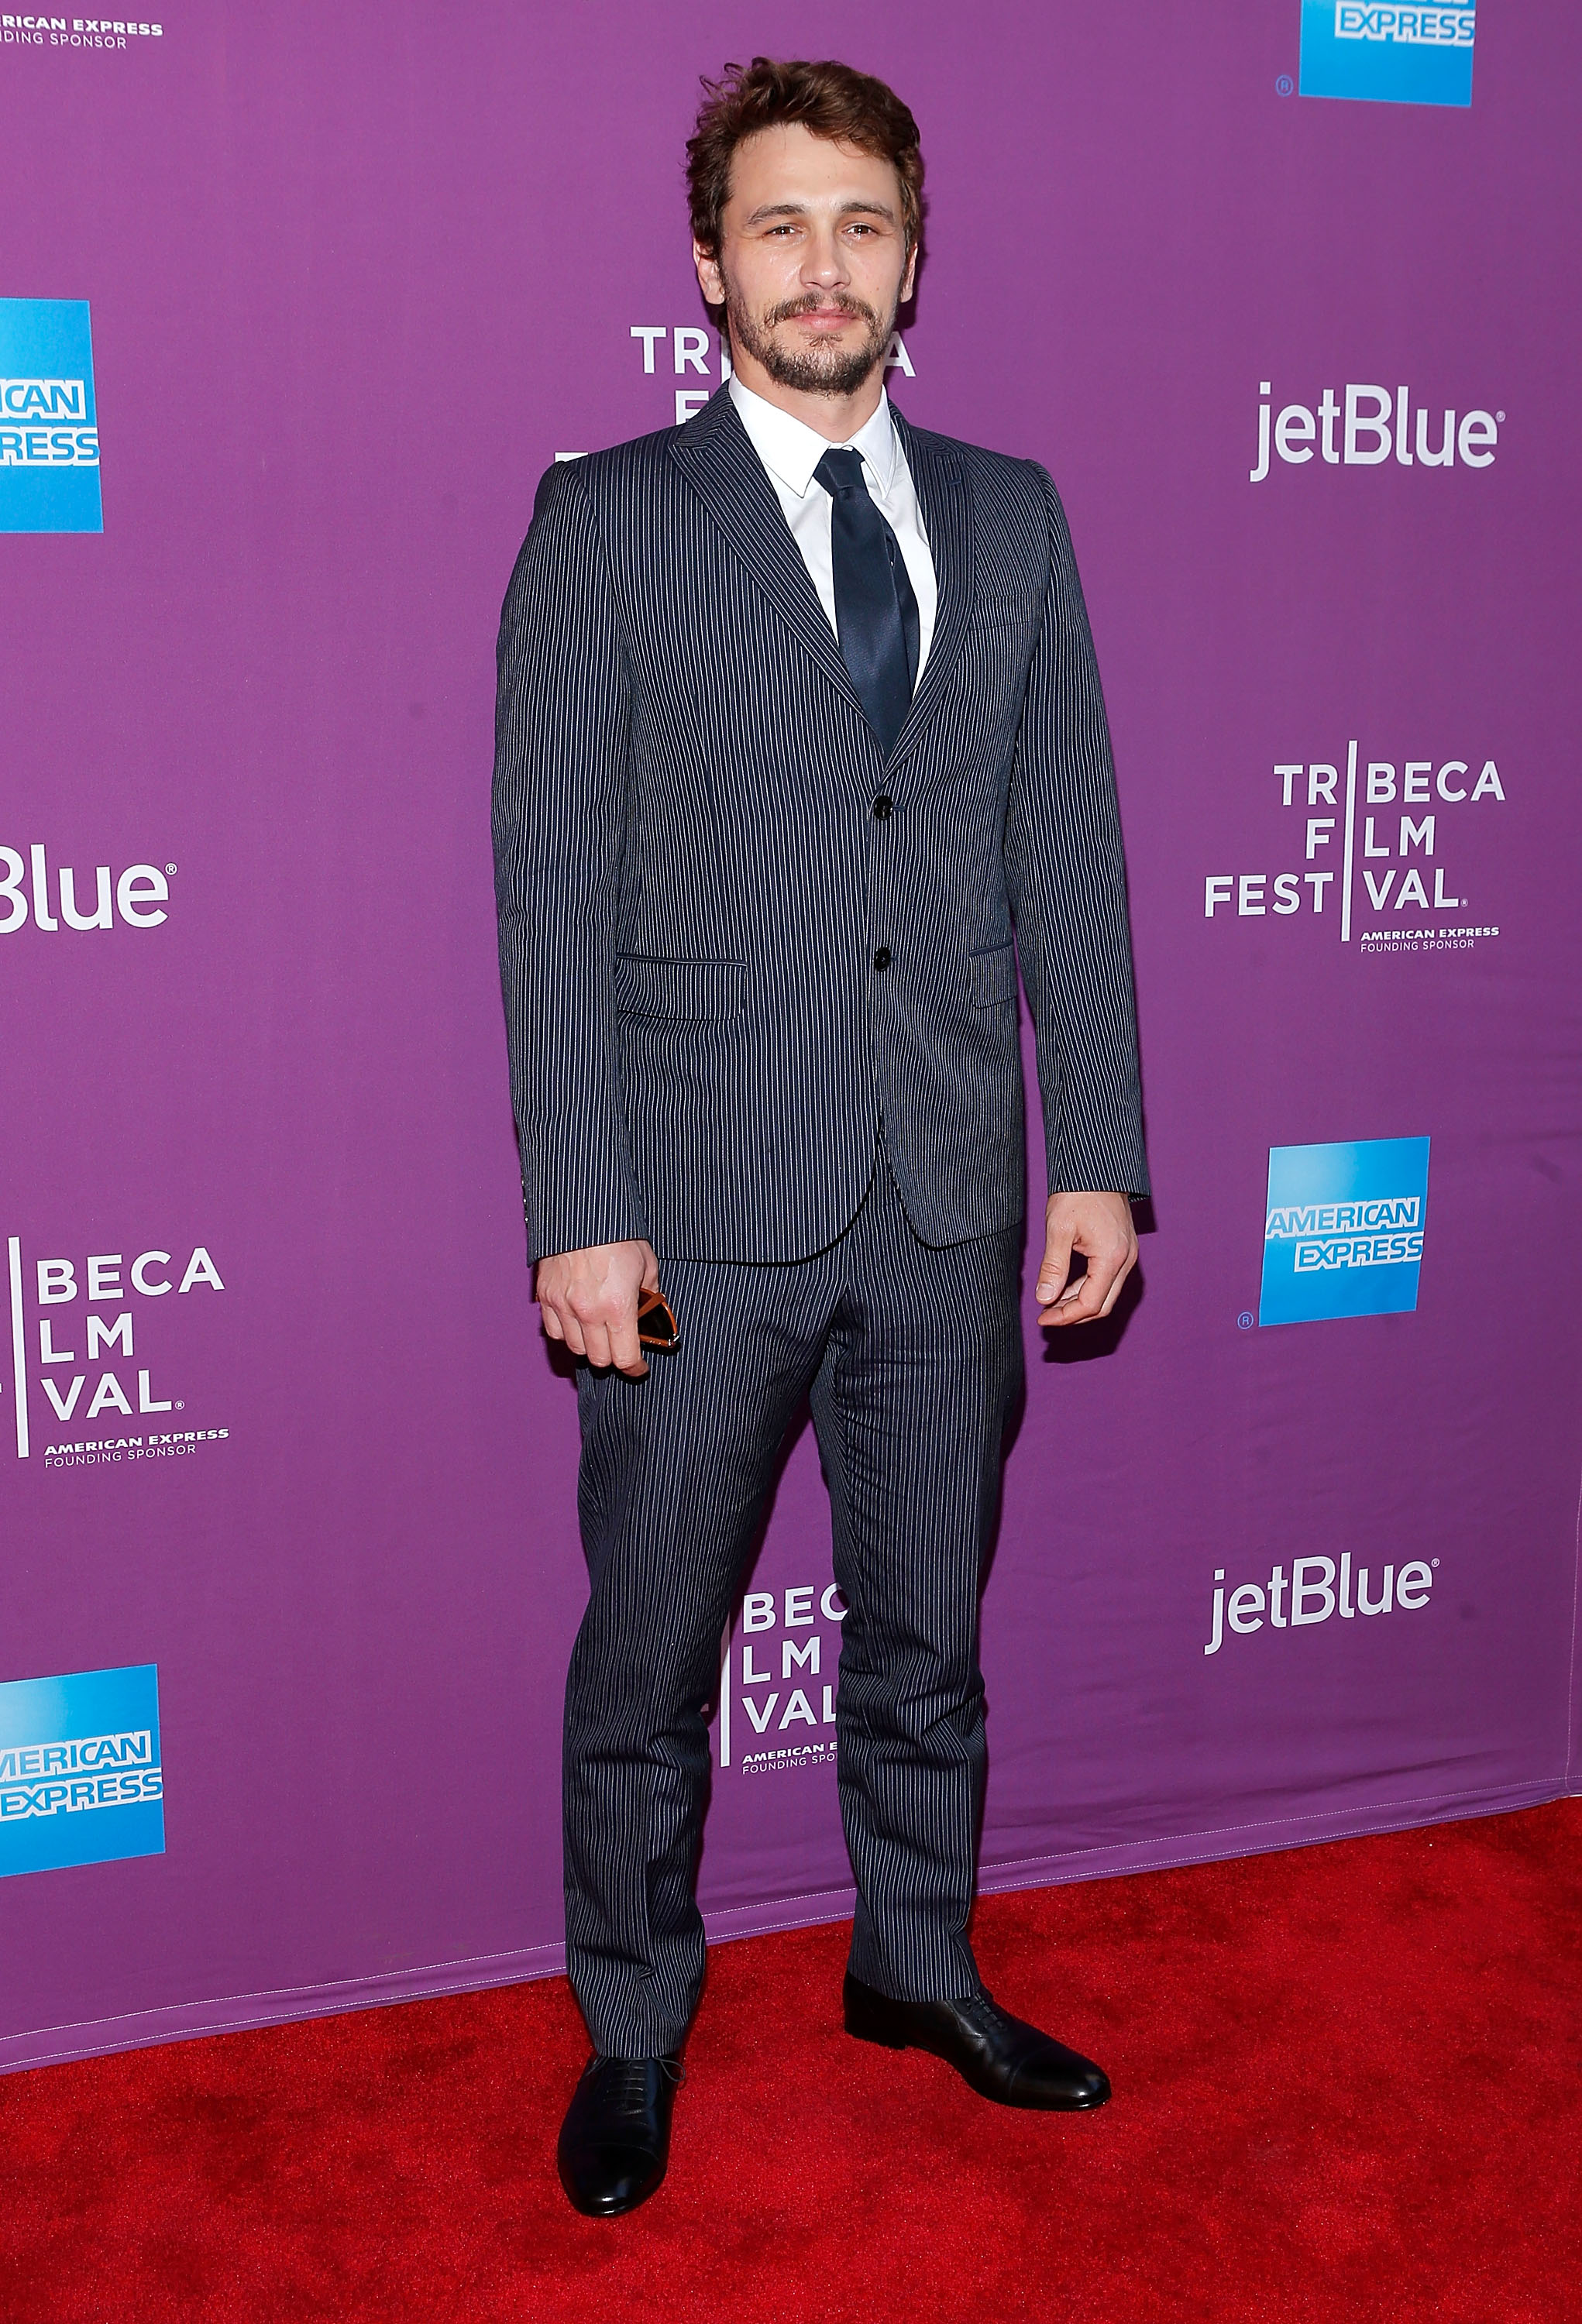 James Franco got dressed up in a su